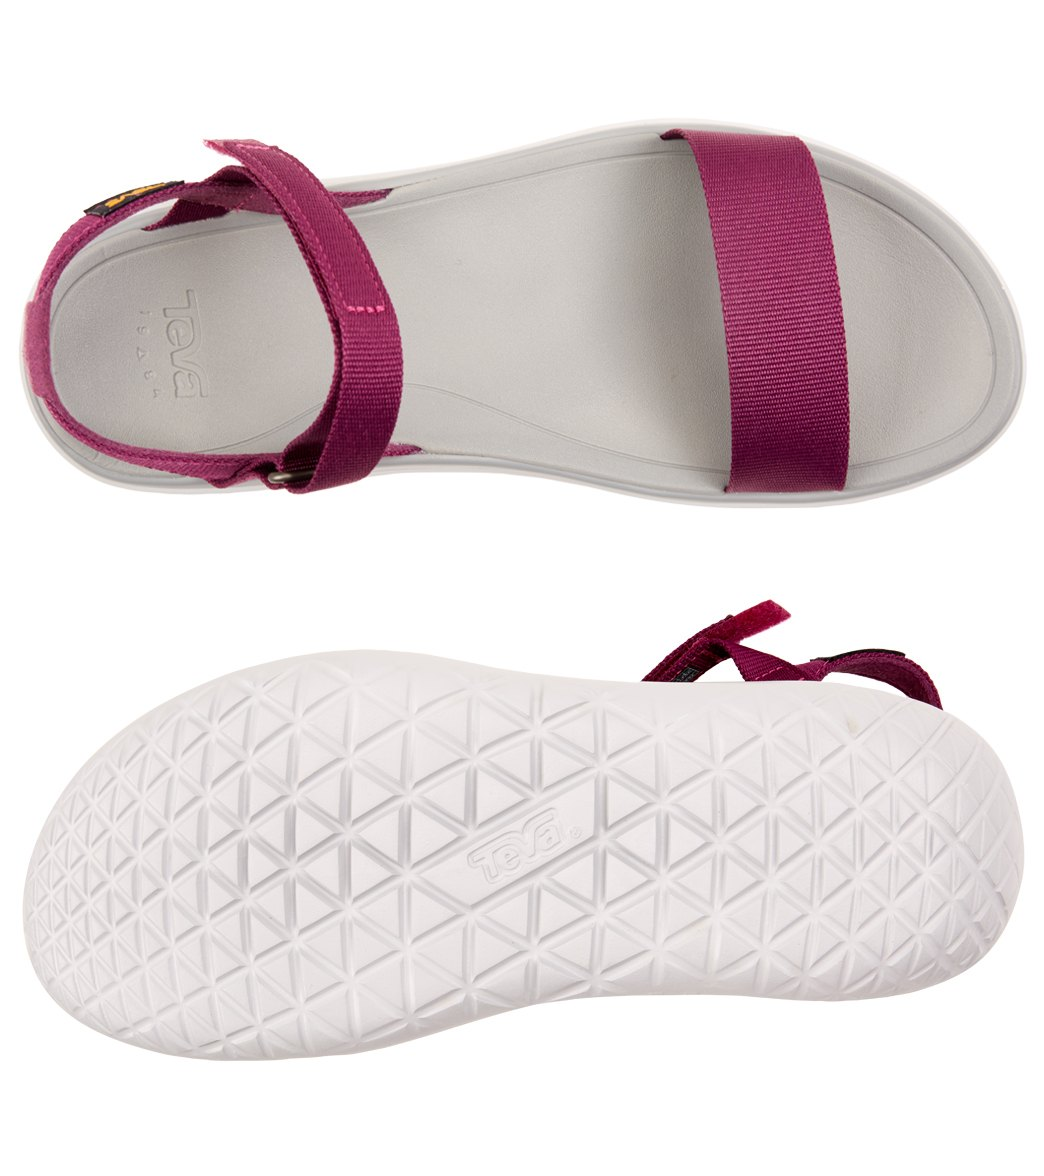 b2c59acb3f9e Teva Women s Terra Float Nova Sandal at SwimOutlet.com - Free Shipping